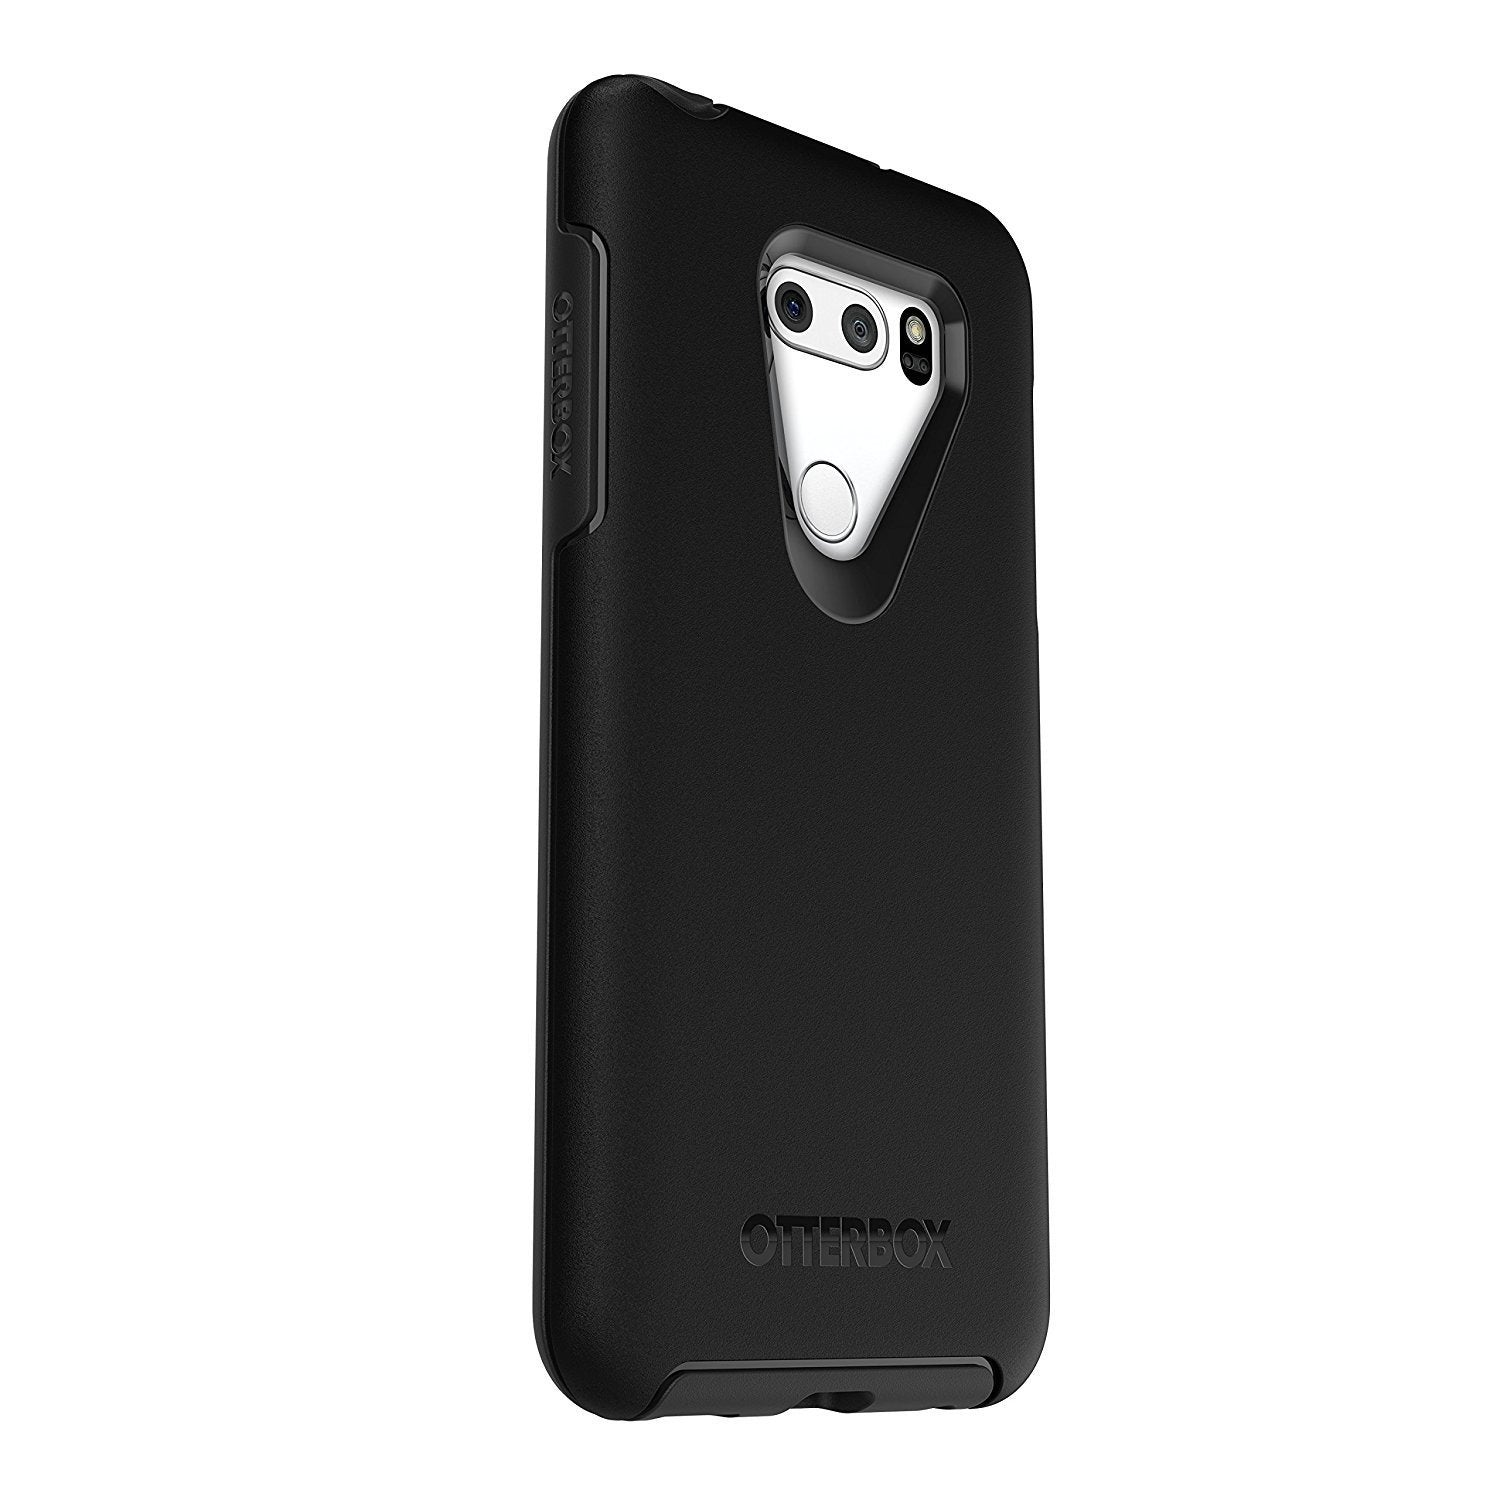 timeless design f9fce 01318 Otterbox LG V30 / V30+ / V35 ThinQ Symmetry Series Case *bulk